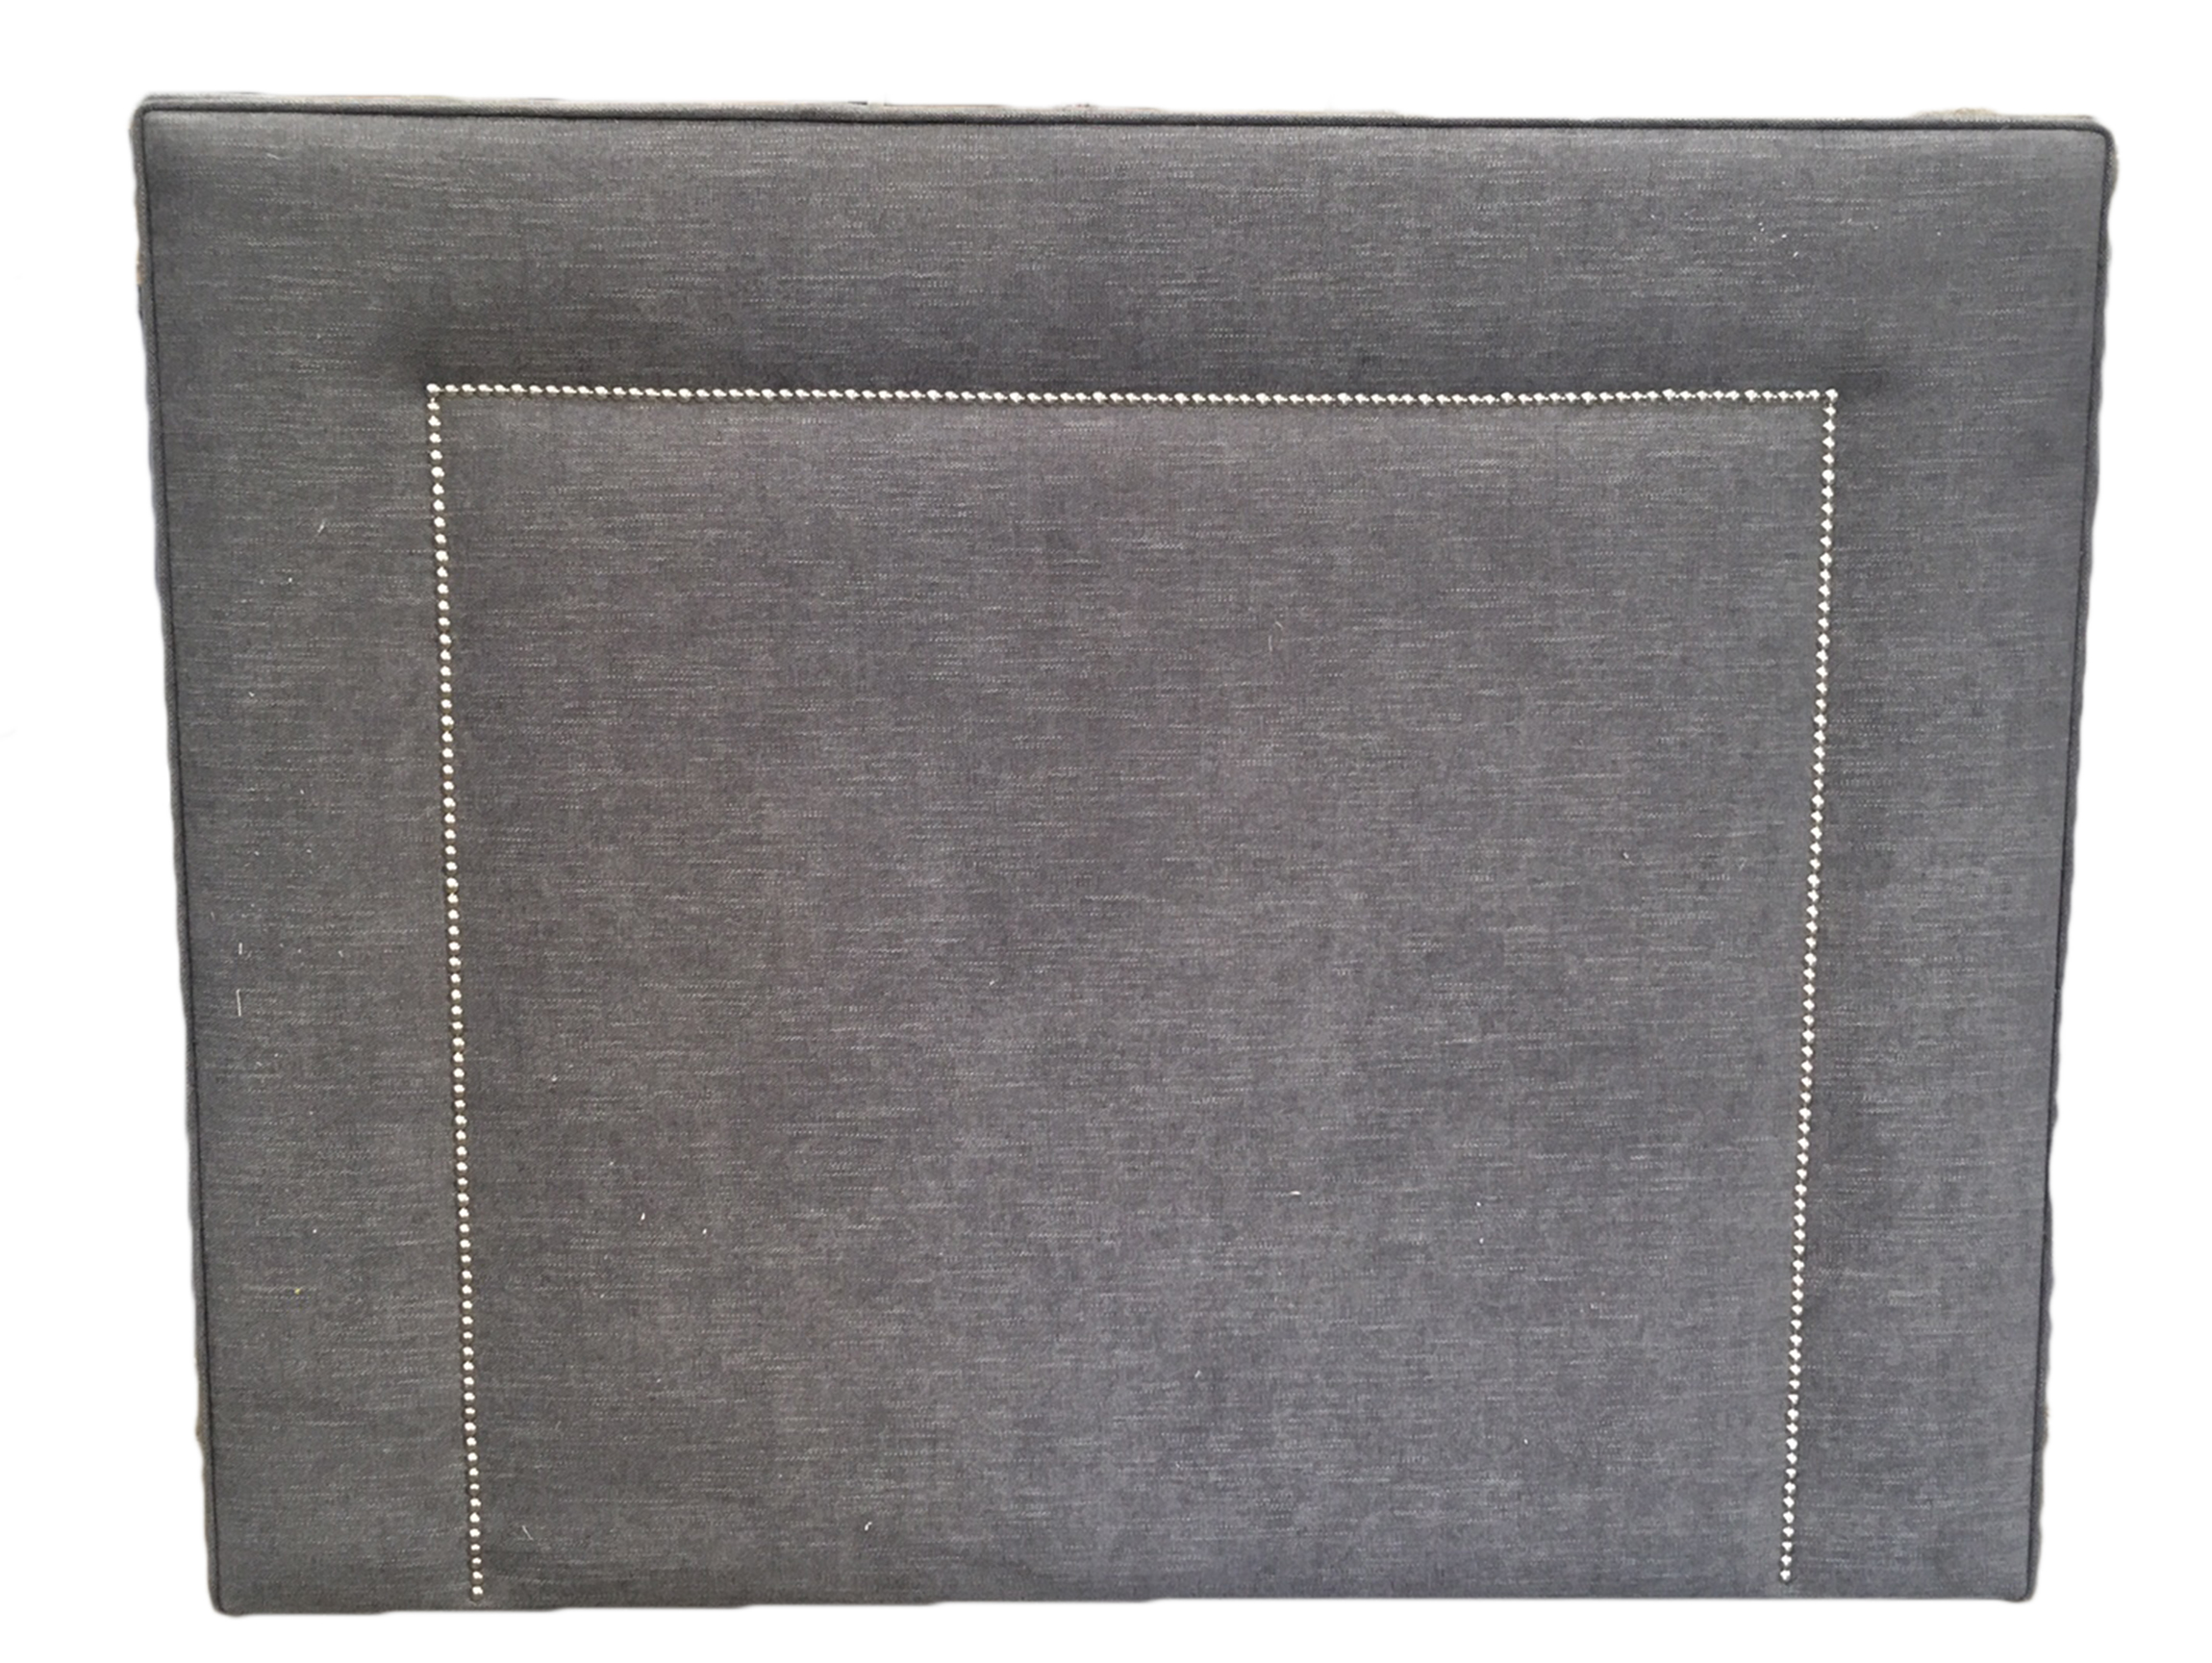 Small Headboard in Plain Grey with Studding